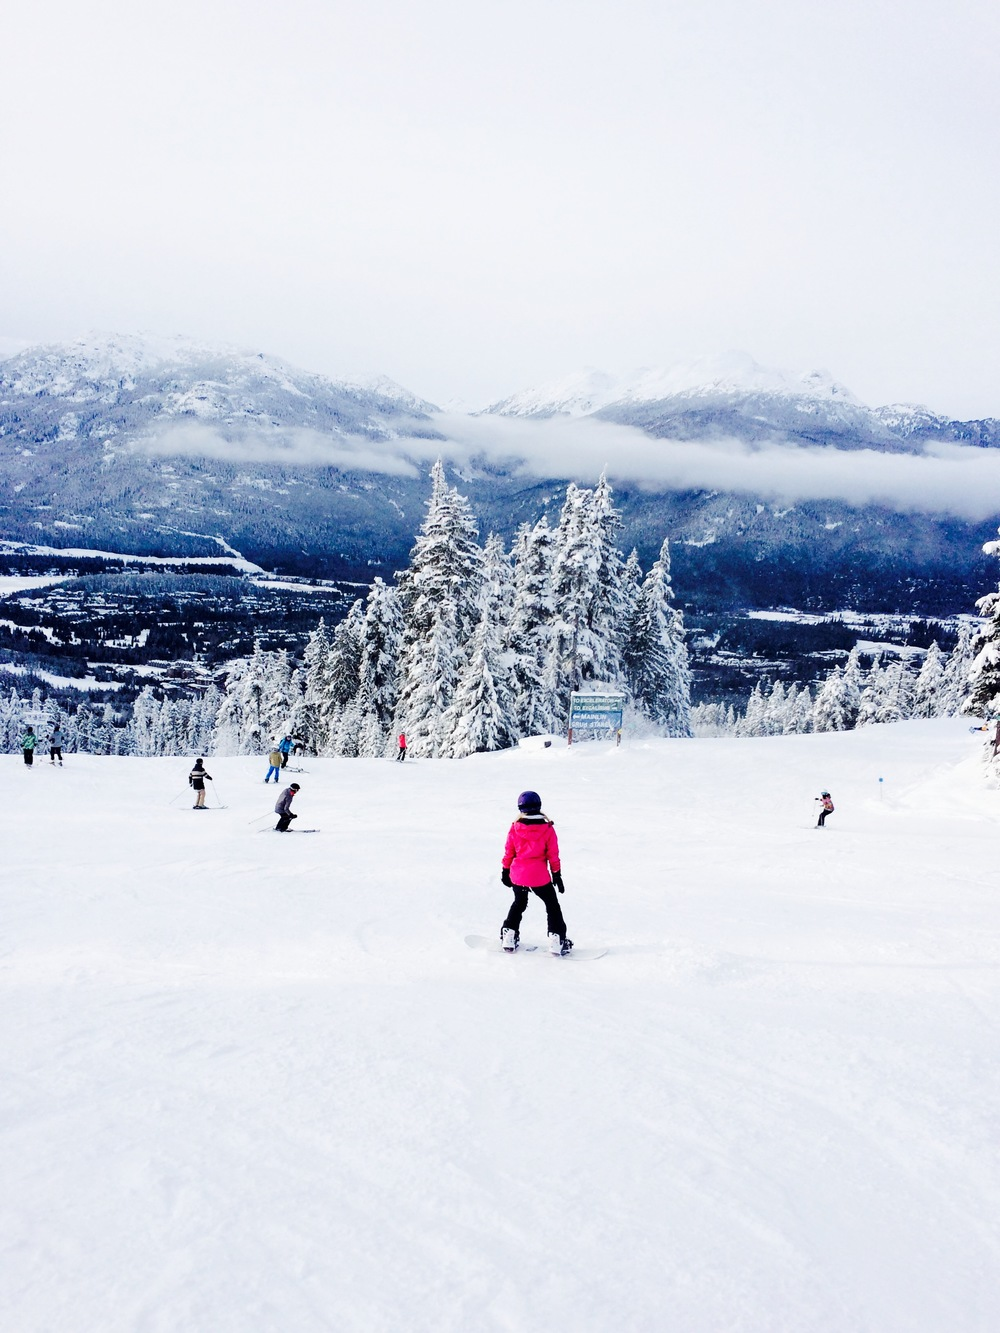 Snowboarding on Whistler Backcomb Mountain